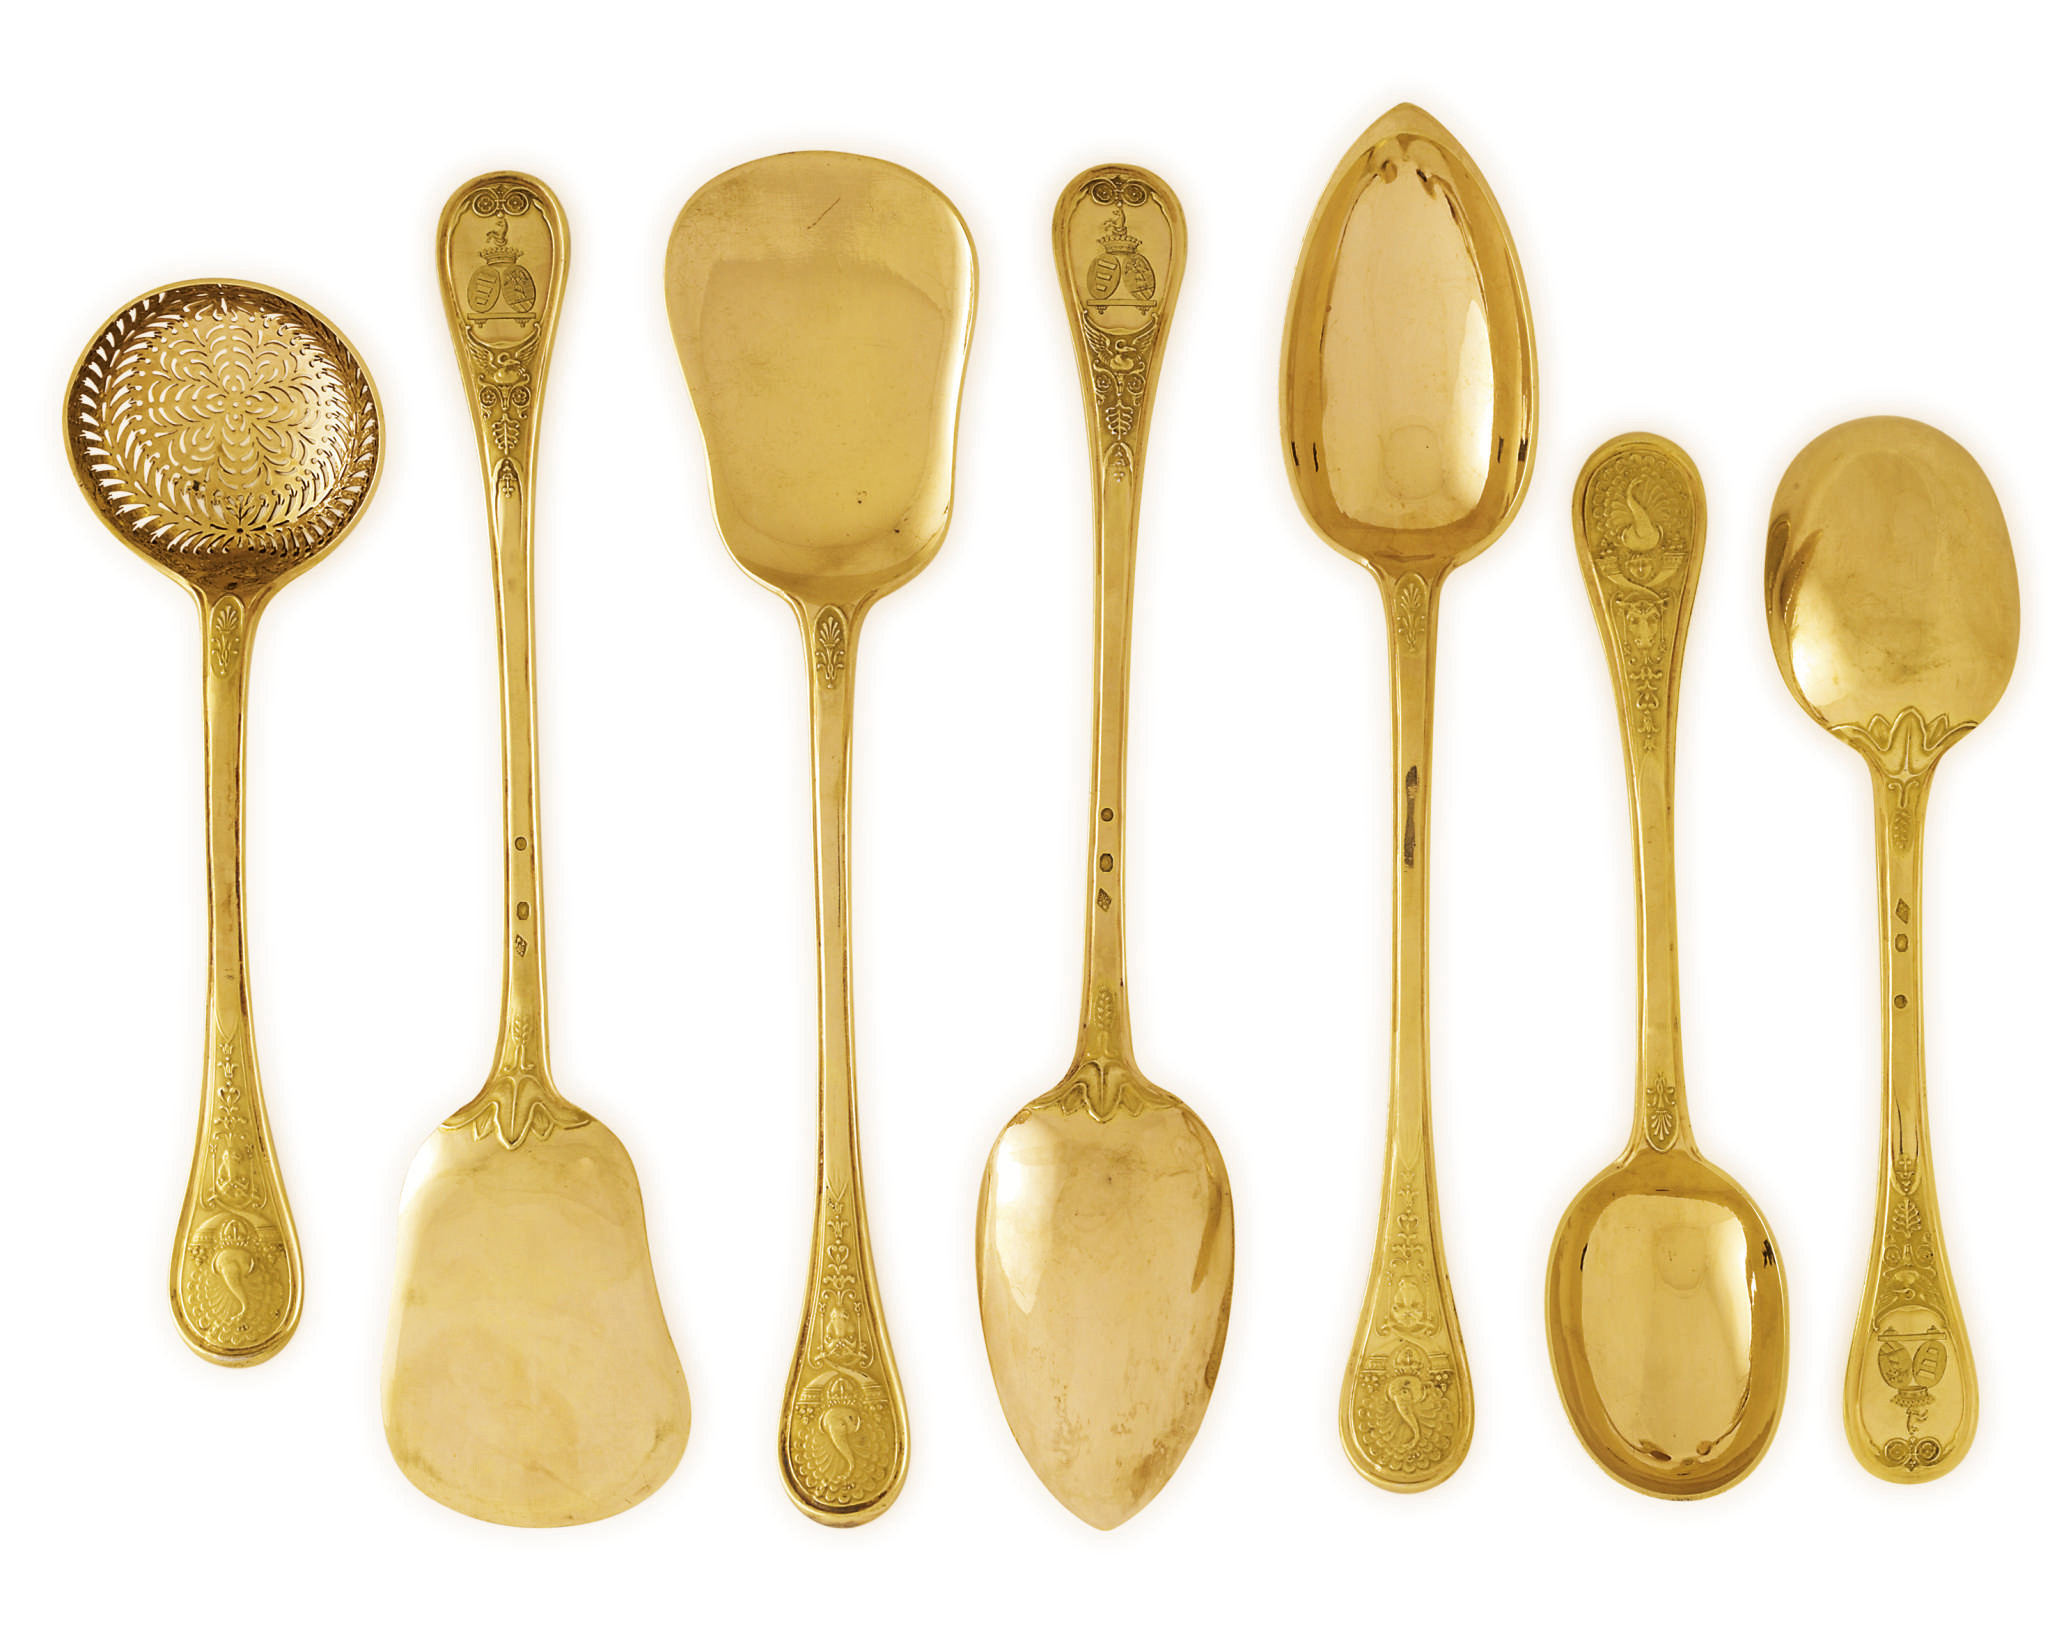 SEVEN FRENCH SILVER-GILT SERVING PIECES FROM THE BRANICKI SERVICE